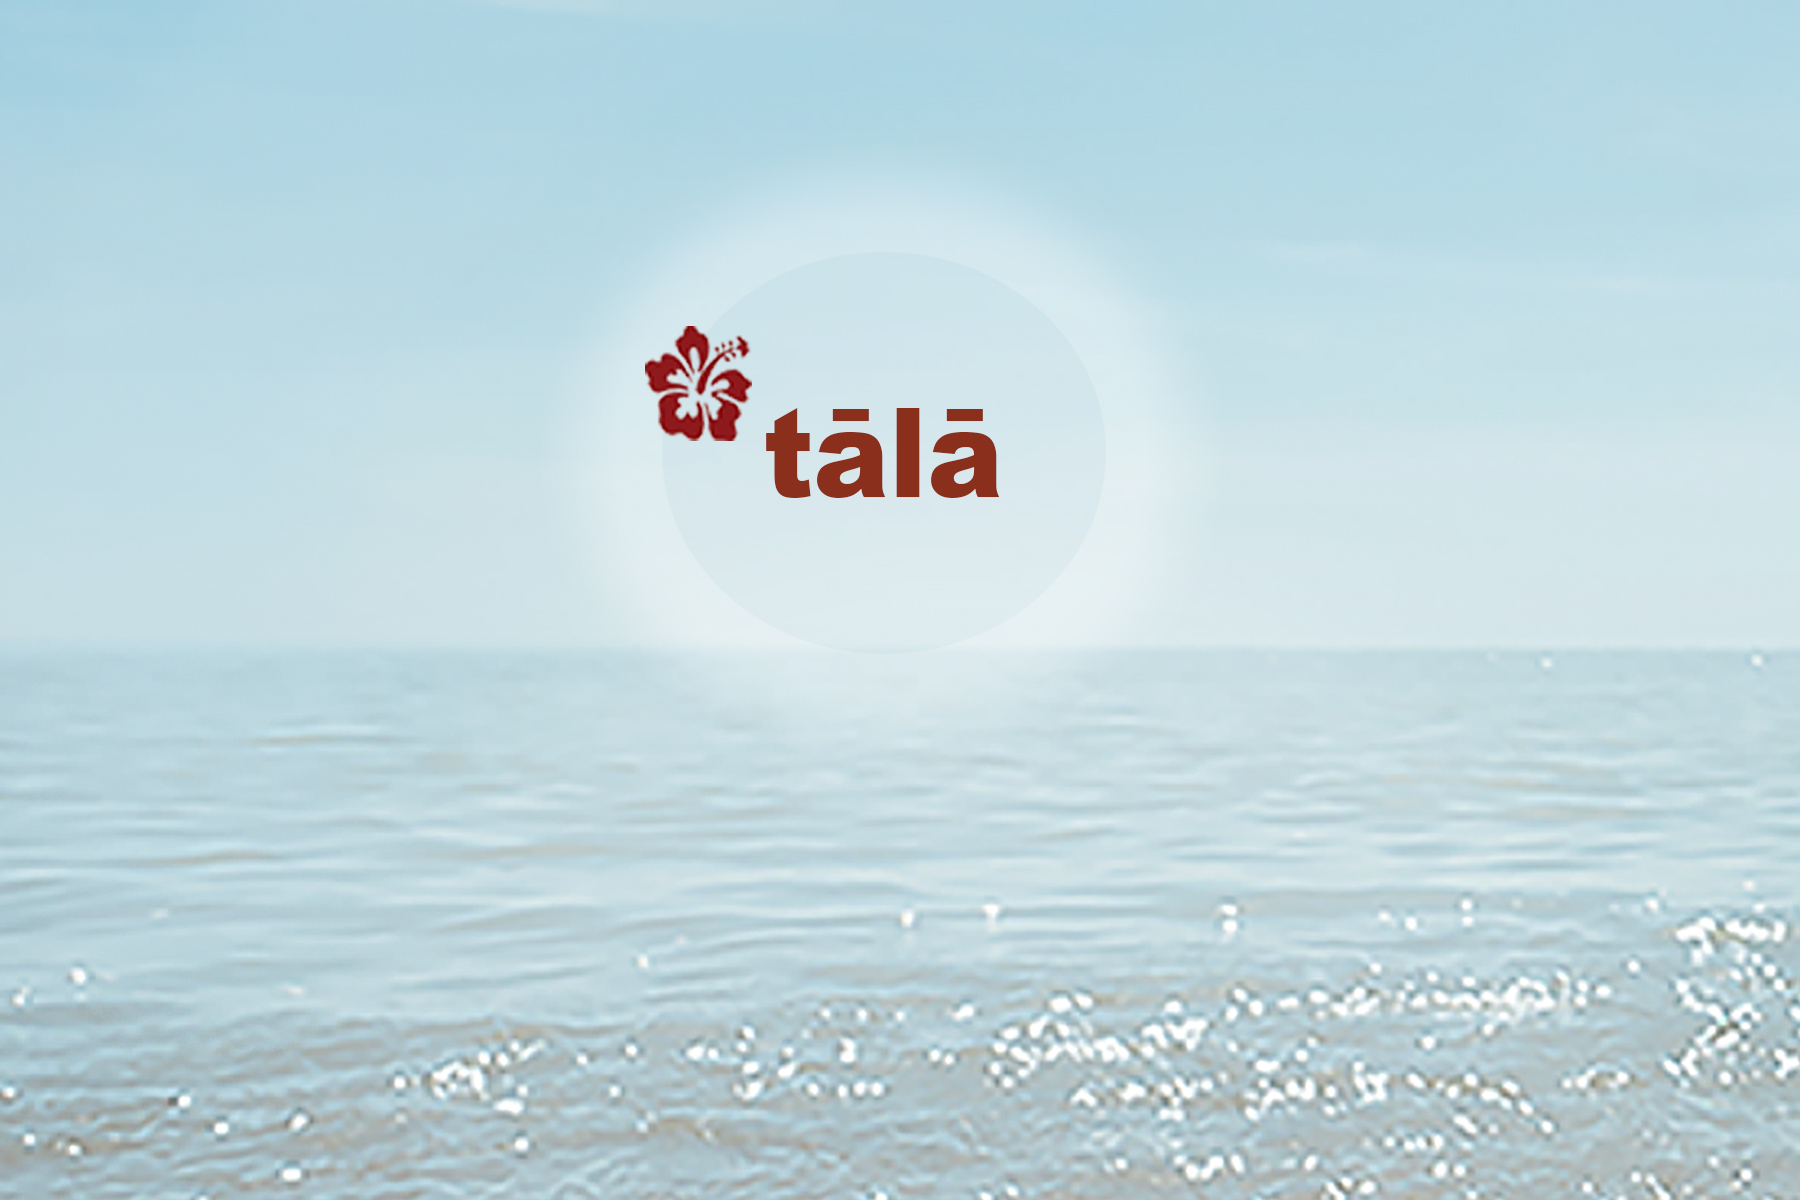 Tālā - The Road to Financial Freedom